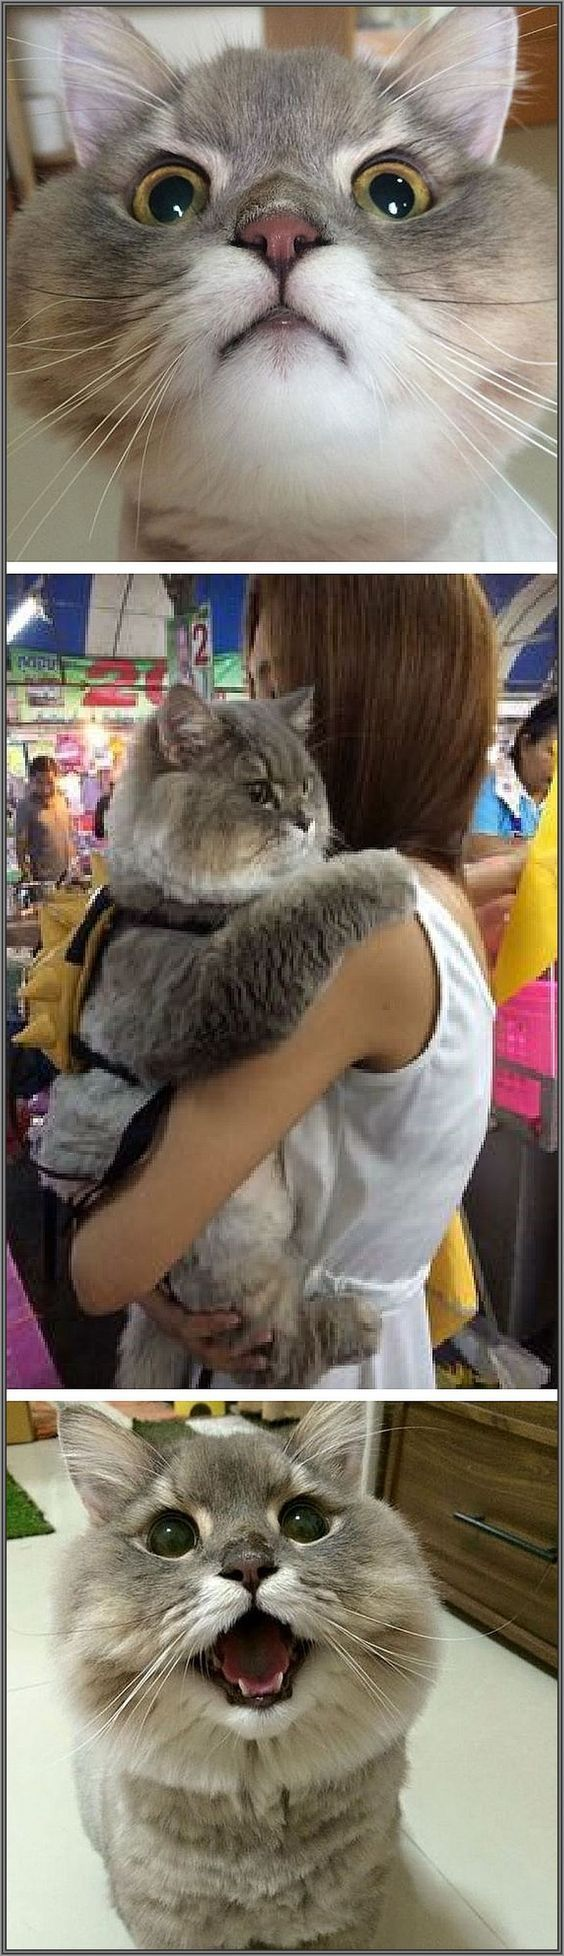 Meet Bone Bone, The Enormous Fluffy Cat From Thailand That